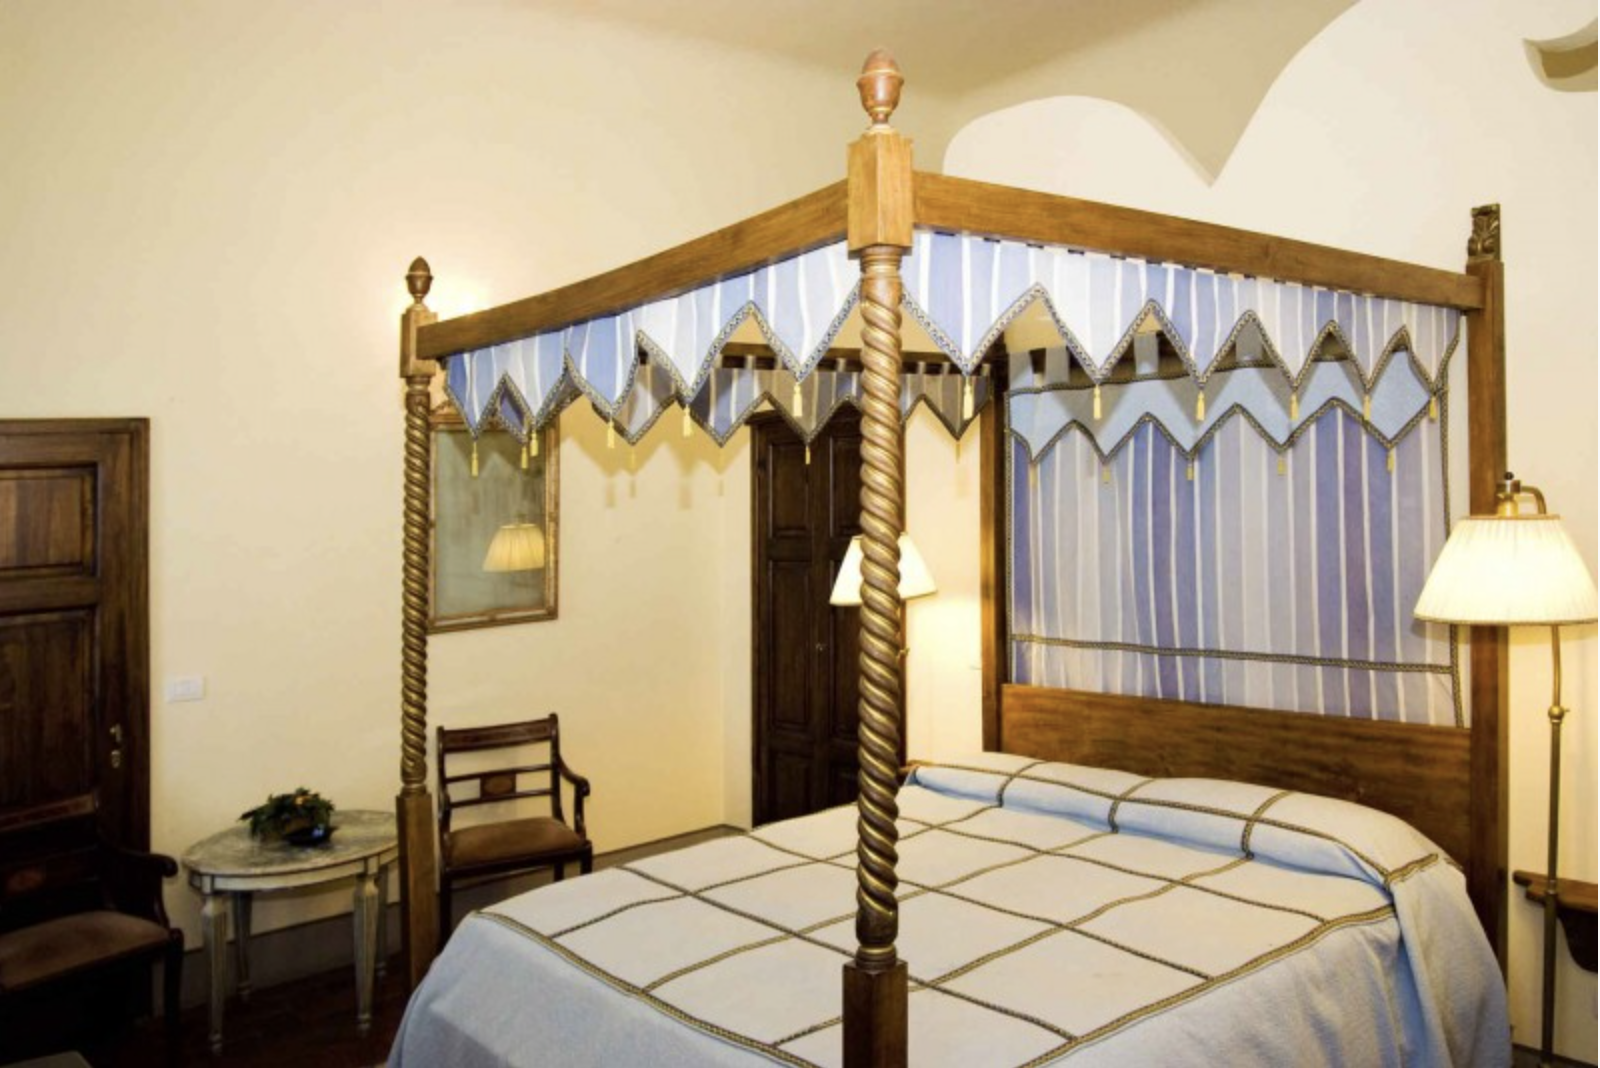 Canopy bed - Letto a baldacchino